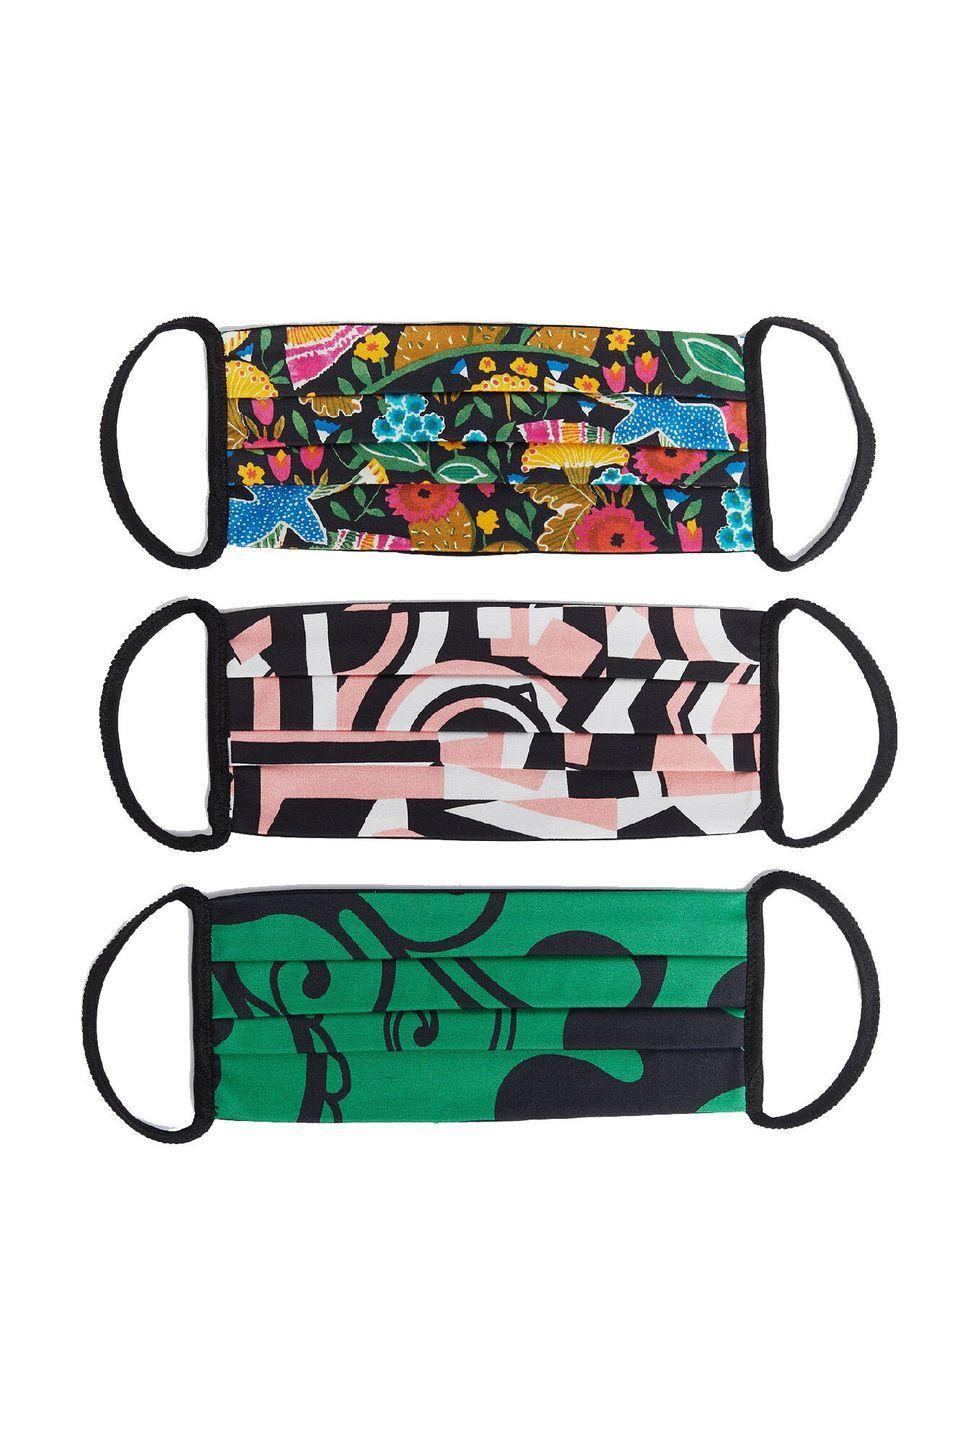 """<p><a class=""""link rapid-noclick-resp"""" href=""""https://www.ladoublej.com/default/ldj-editions/accessories/mask-set-of-three-multicolor-MAS0001COT006LDJ0002.html"""" rel=""""nofollow noopener"""" target=""""_blank"""" data-ylk=""""slk:SHOP NOW"""">SHOP NOW </a></p><p>Italian label La DoubleJ embraces mood-boosting print and colour with its pack of three masks, created with stretch-cotton.</p><p>£25 for three, <a href=""""https://www.ladoublej.com/default/ldj-editions/accessories/mask-set-of-three-multicolor-MAS0001COT006LDJ0002.html"""" rel=""""nofollow noopener"""" target=""""_blank"""" data-ylk=""""slk:La DoubleJ"""" class=""""link rapid-noclick-resp"""">La DoubleJ</a></p>"""